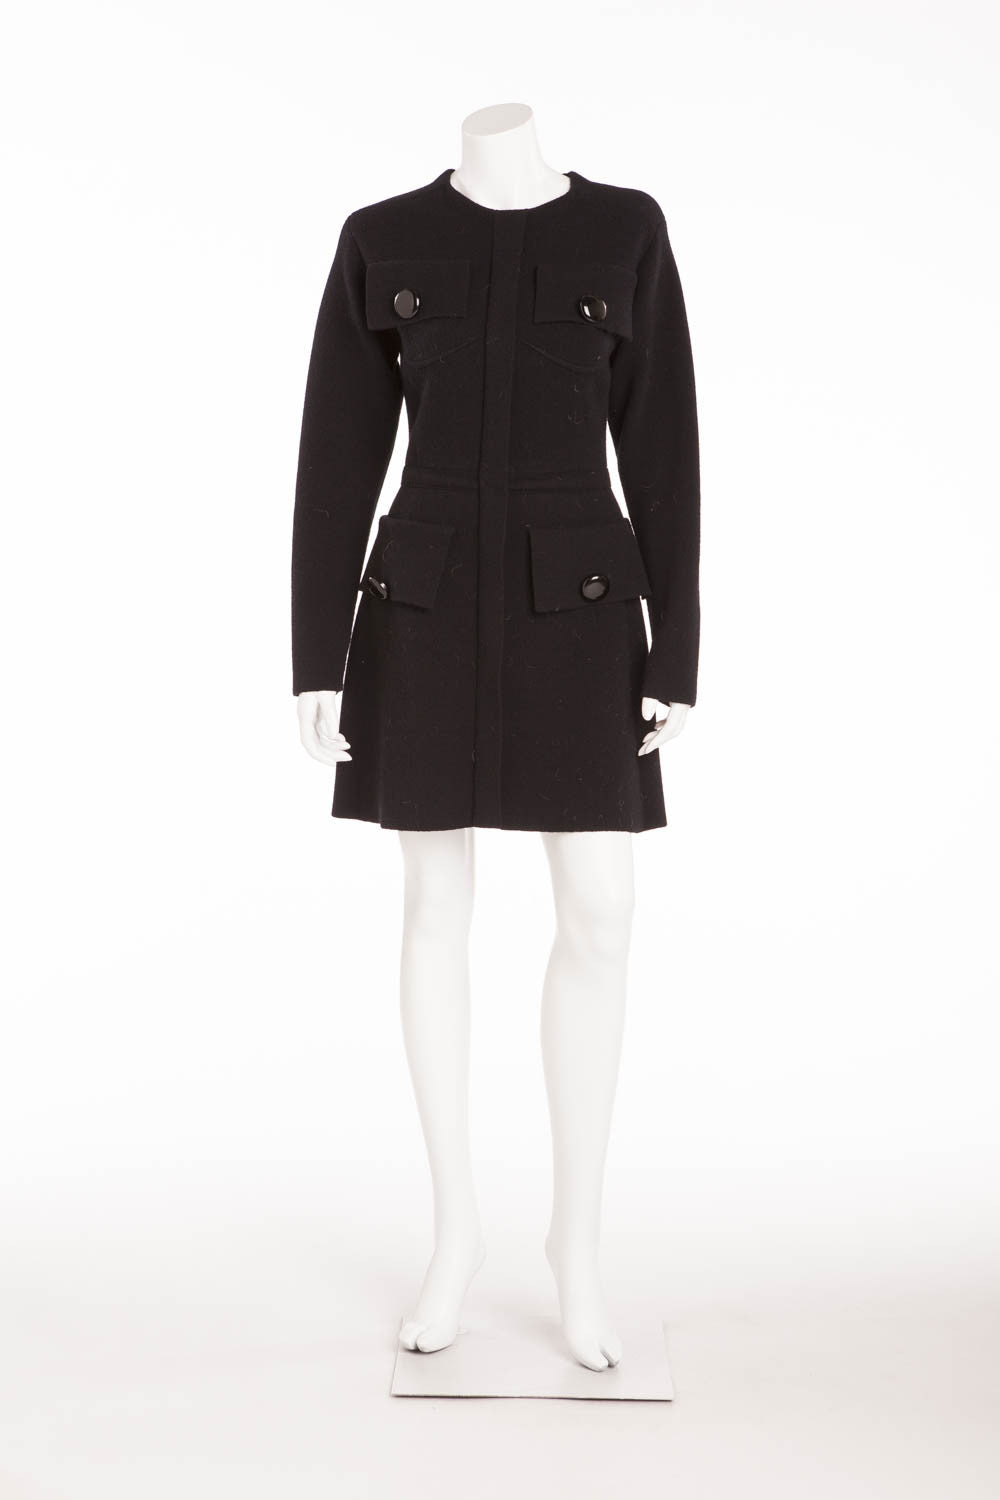 Louis Vuitton - Black Long Sleeve Mini Dress - M